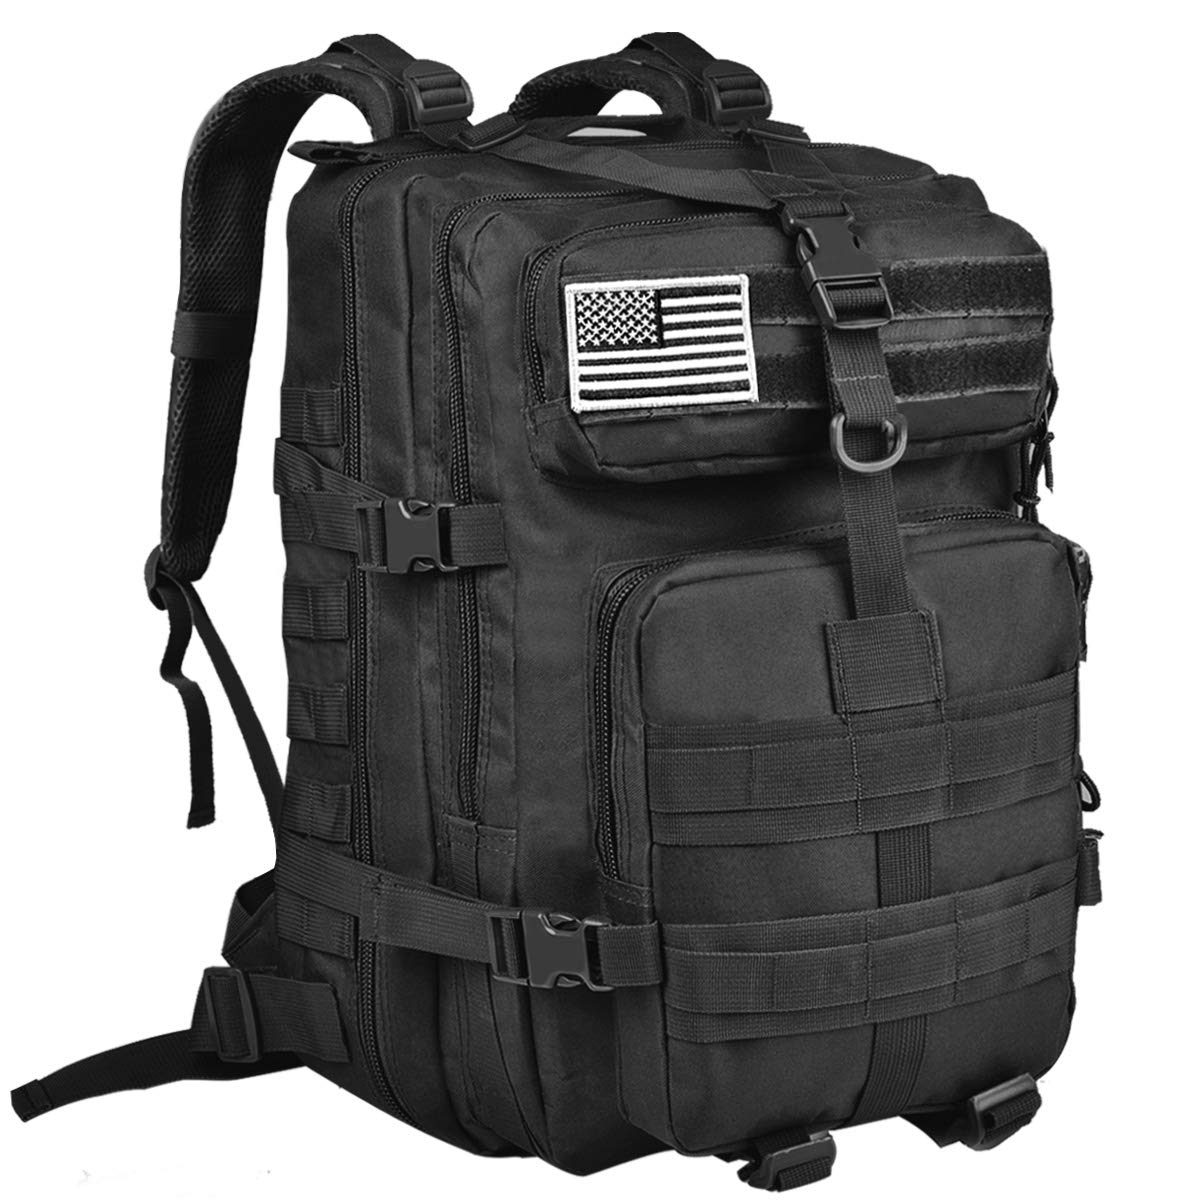 NOOLA 40L Military Tactical Backpack 3 Day Pack Molle Bag Army Rucksack Black by NOOLA